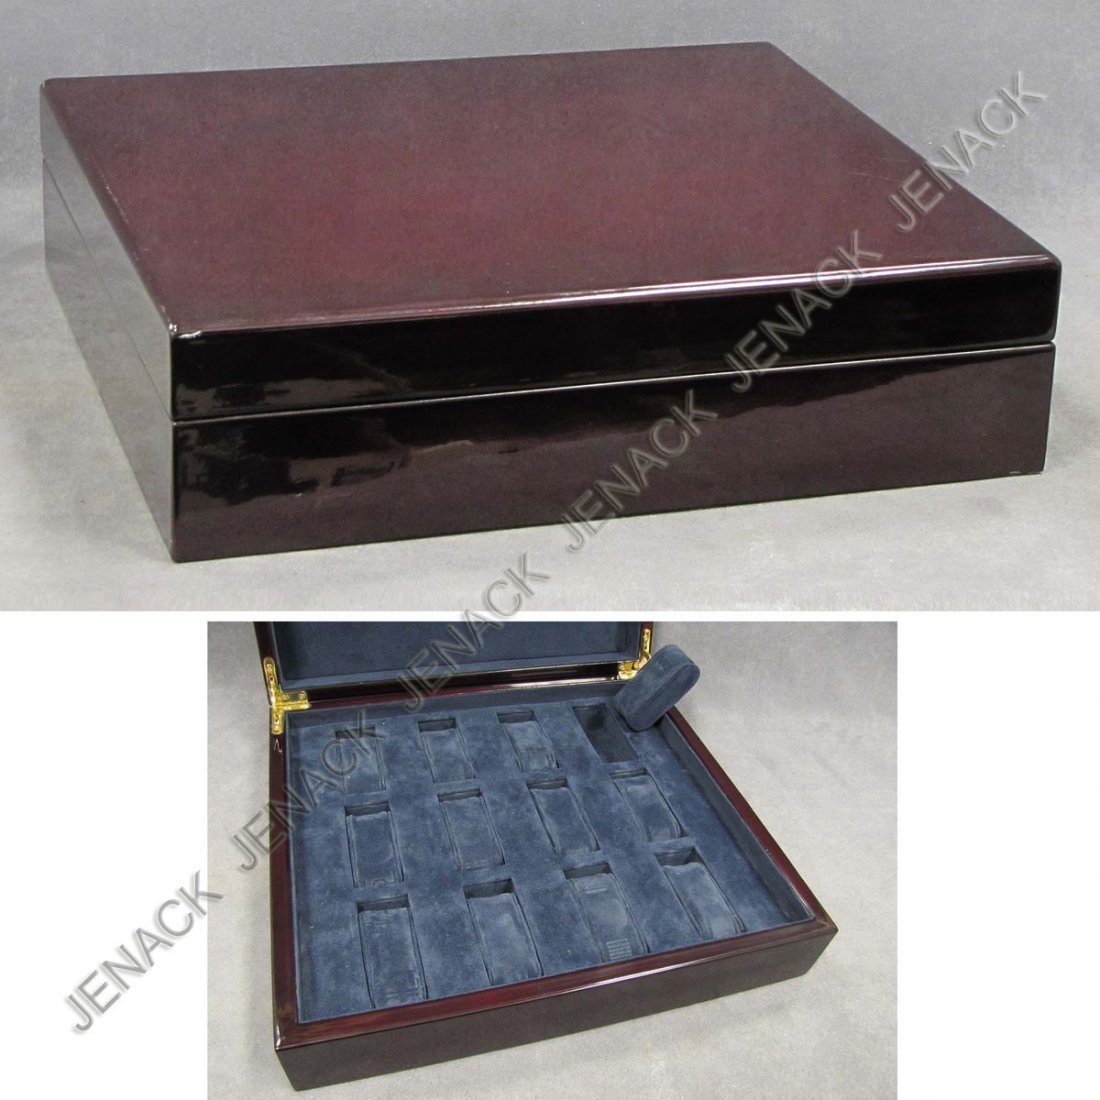 6: COLLECTOR'S LACQUERED WRISTWATCH CASE